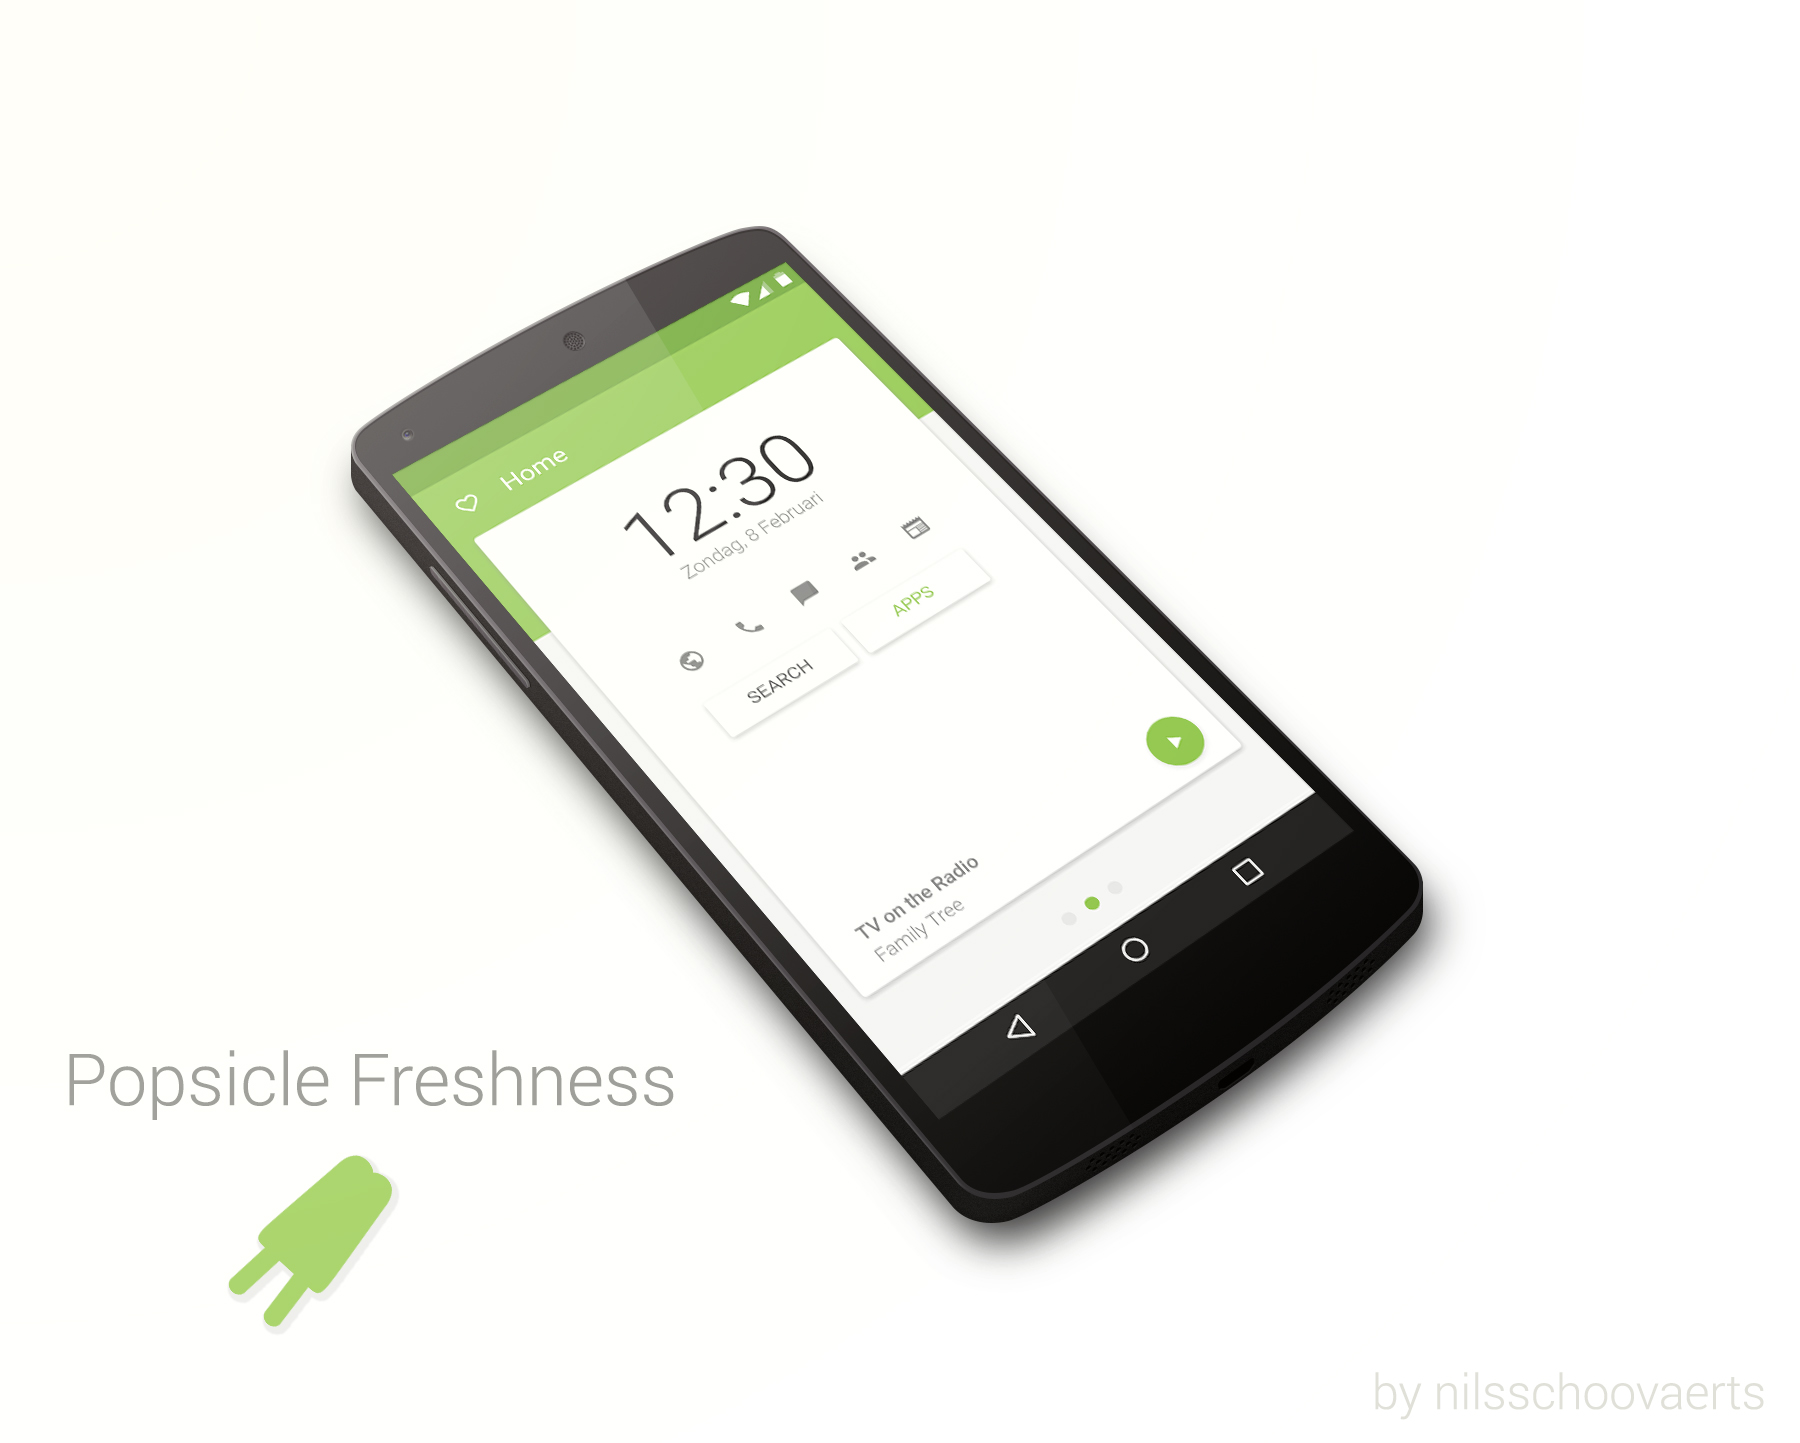 Top Android Homescreen Feb. 13th: Popsicle Freshness ...